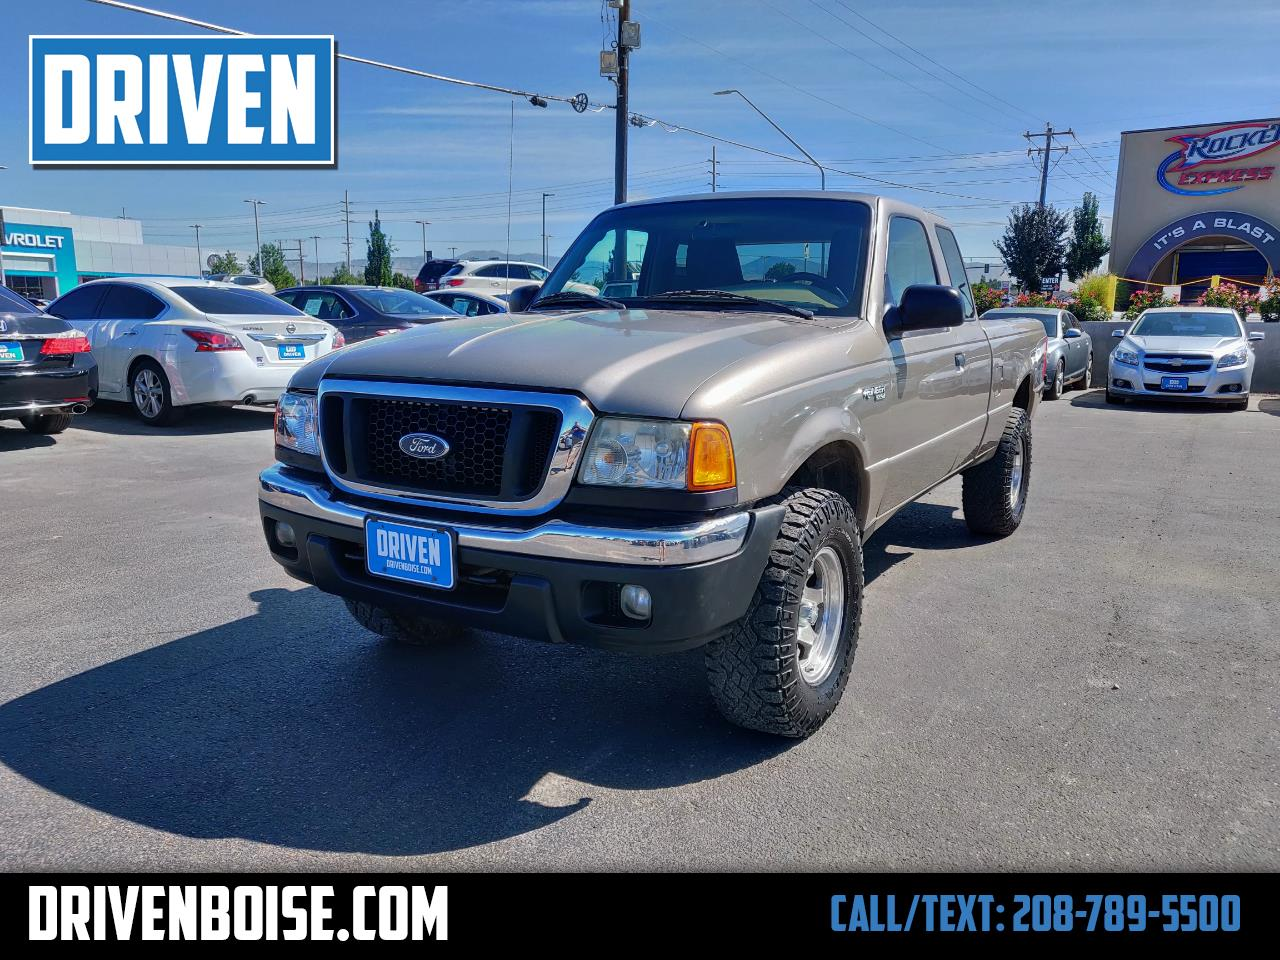 2005 Ford Ranger XLT SuperCab 2-Door 4WD